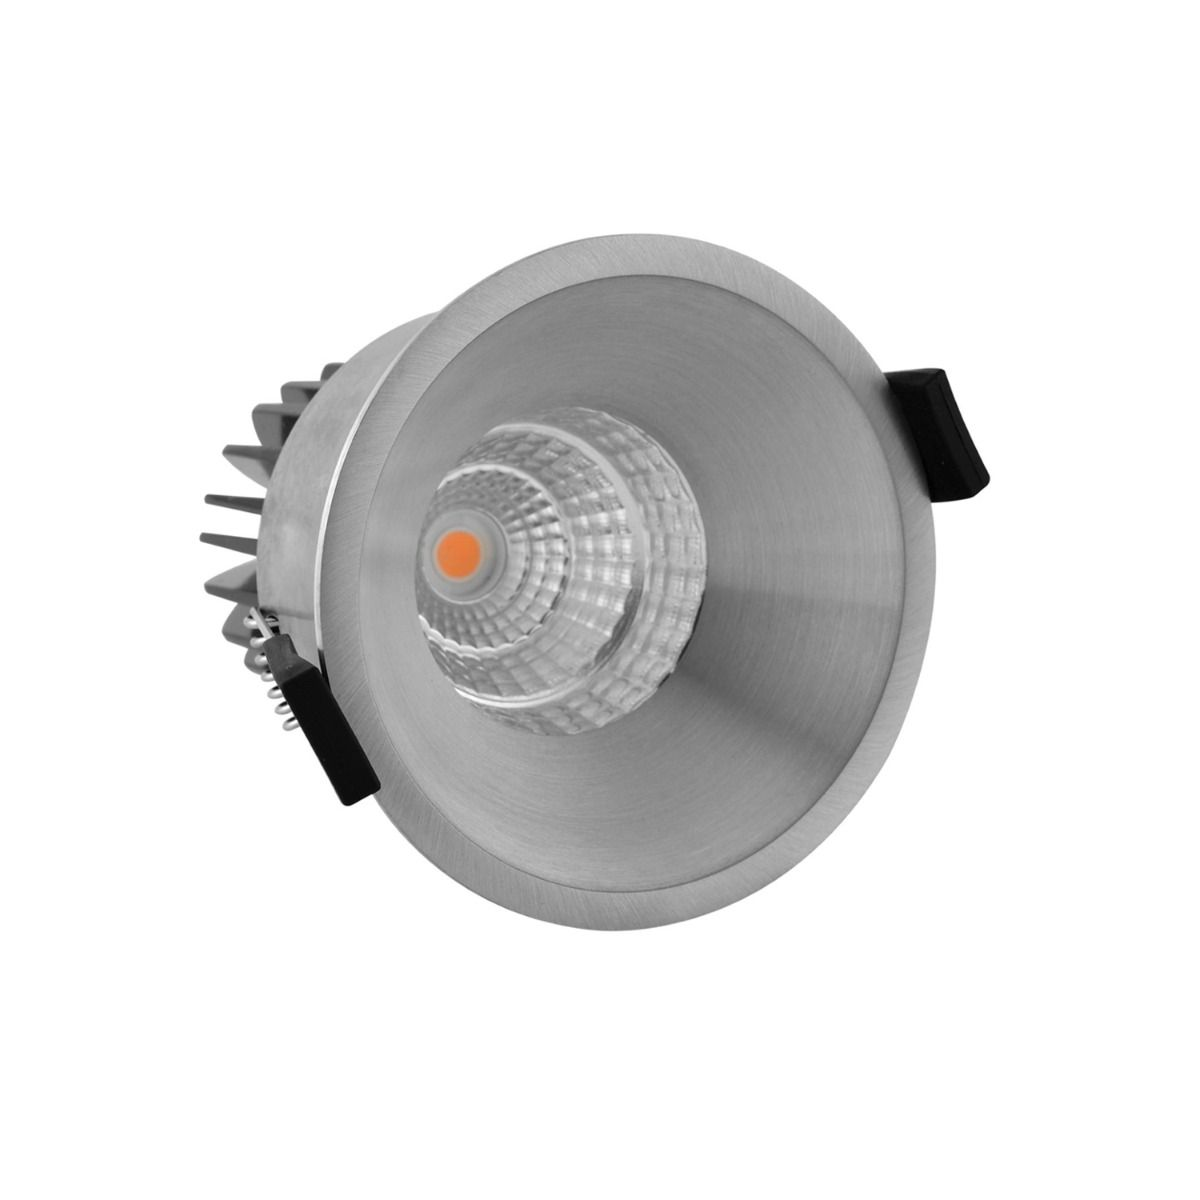 Noxion LED Spot Starlight IP54 2700K Aluminium 6W | Best Colour Rendering - Dimmable